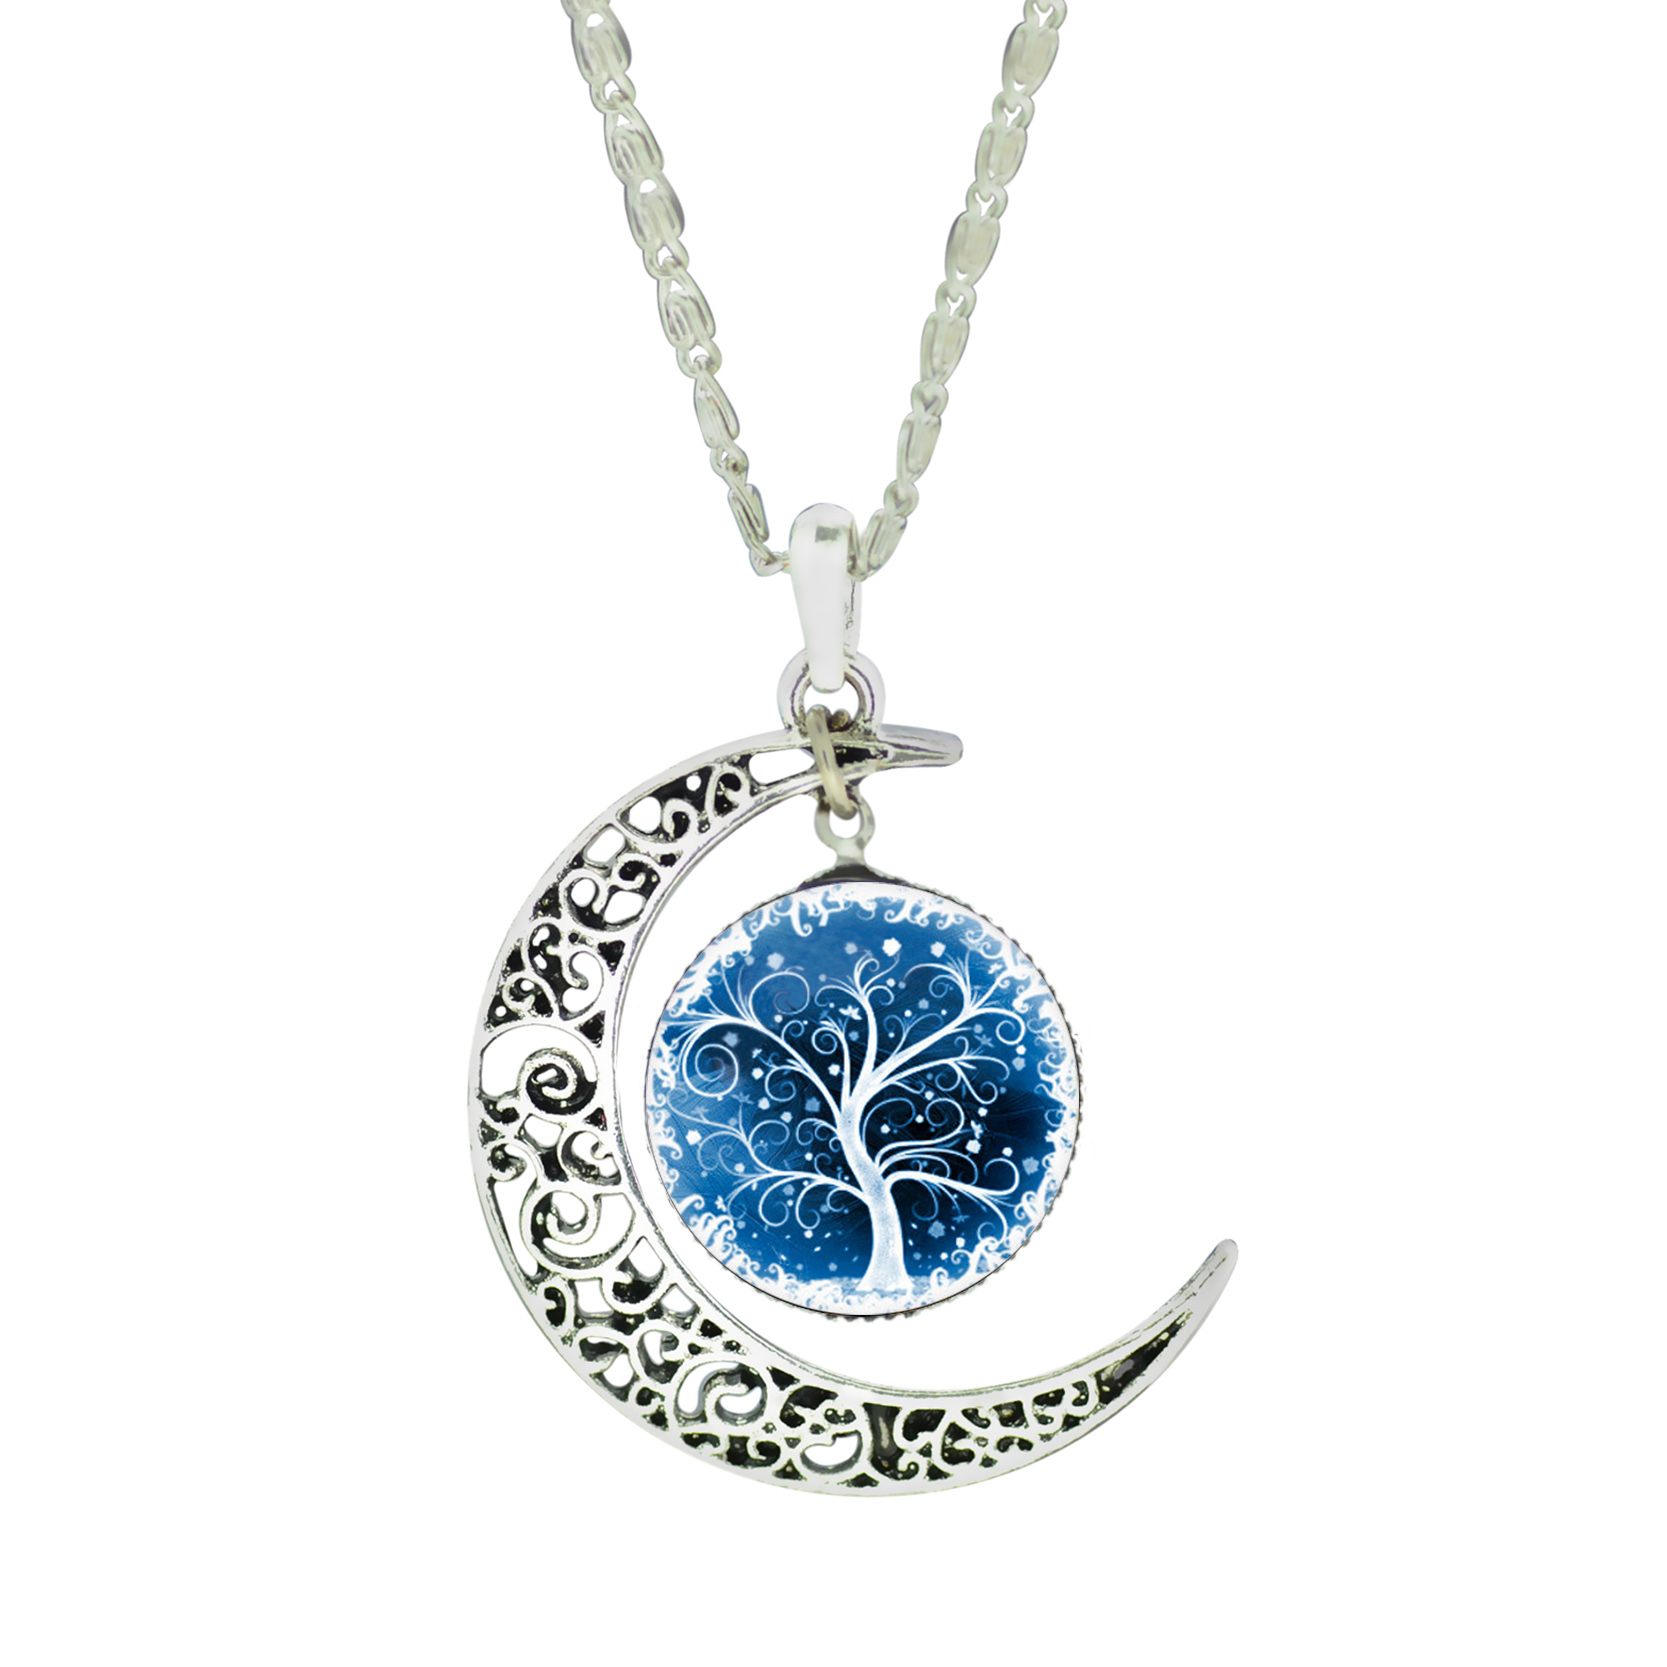 18pcs/lot Wholesale Fashion Cat Life Tree Glass Cabochon NecklaceJ ewelry Vintage Silver Color Moon Necklace for Women(China (Mainland))